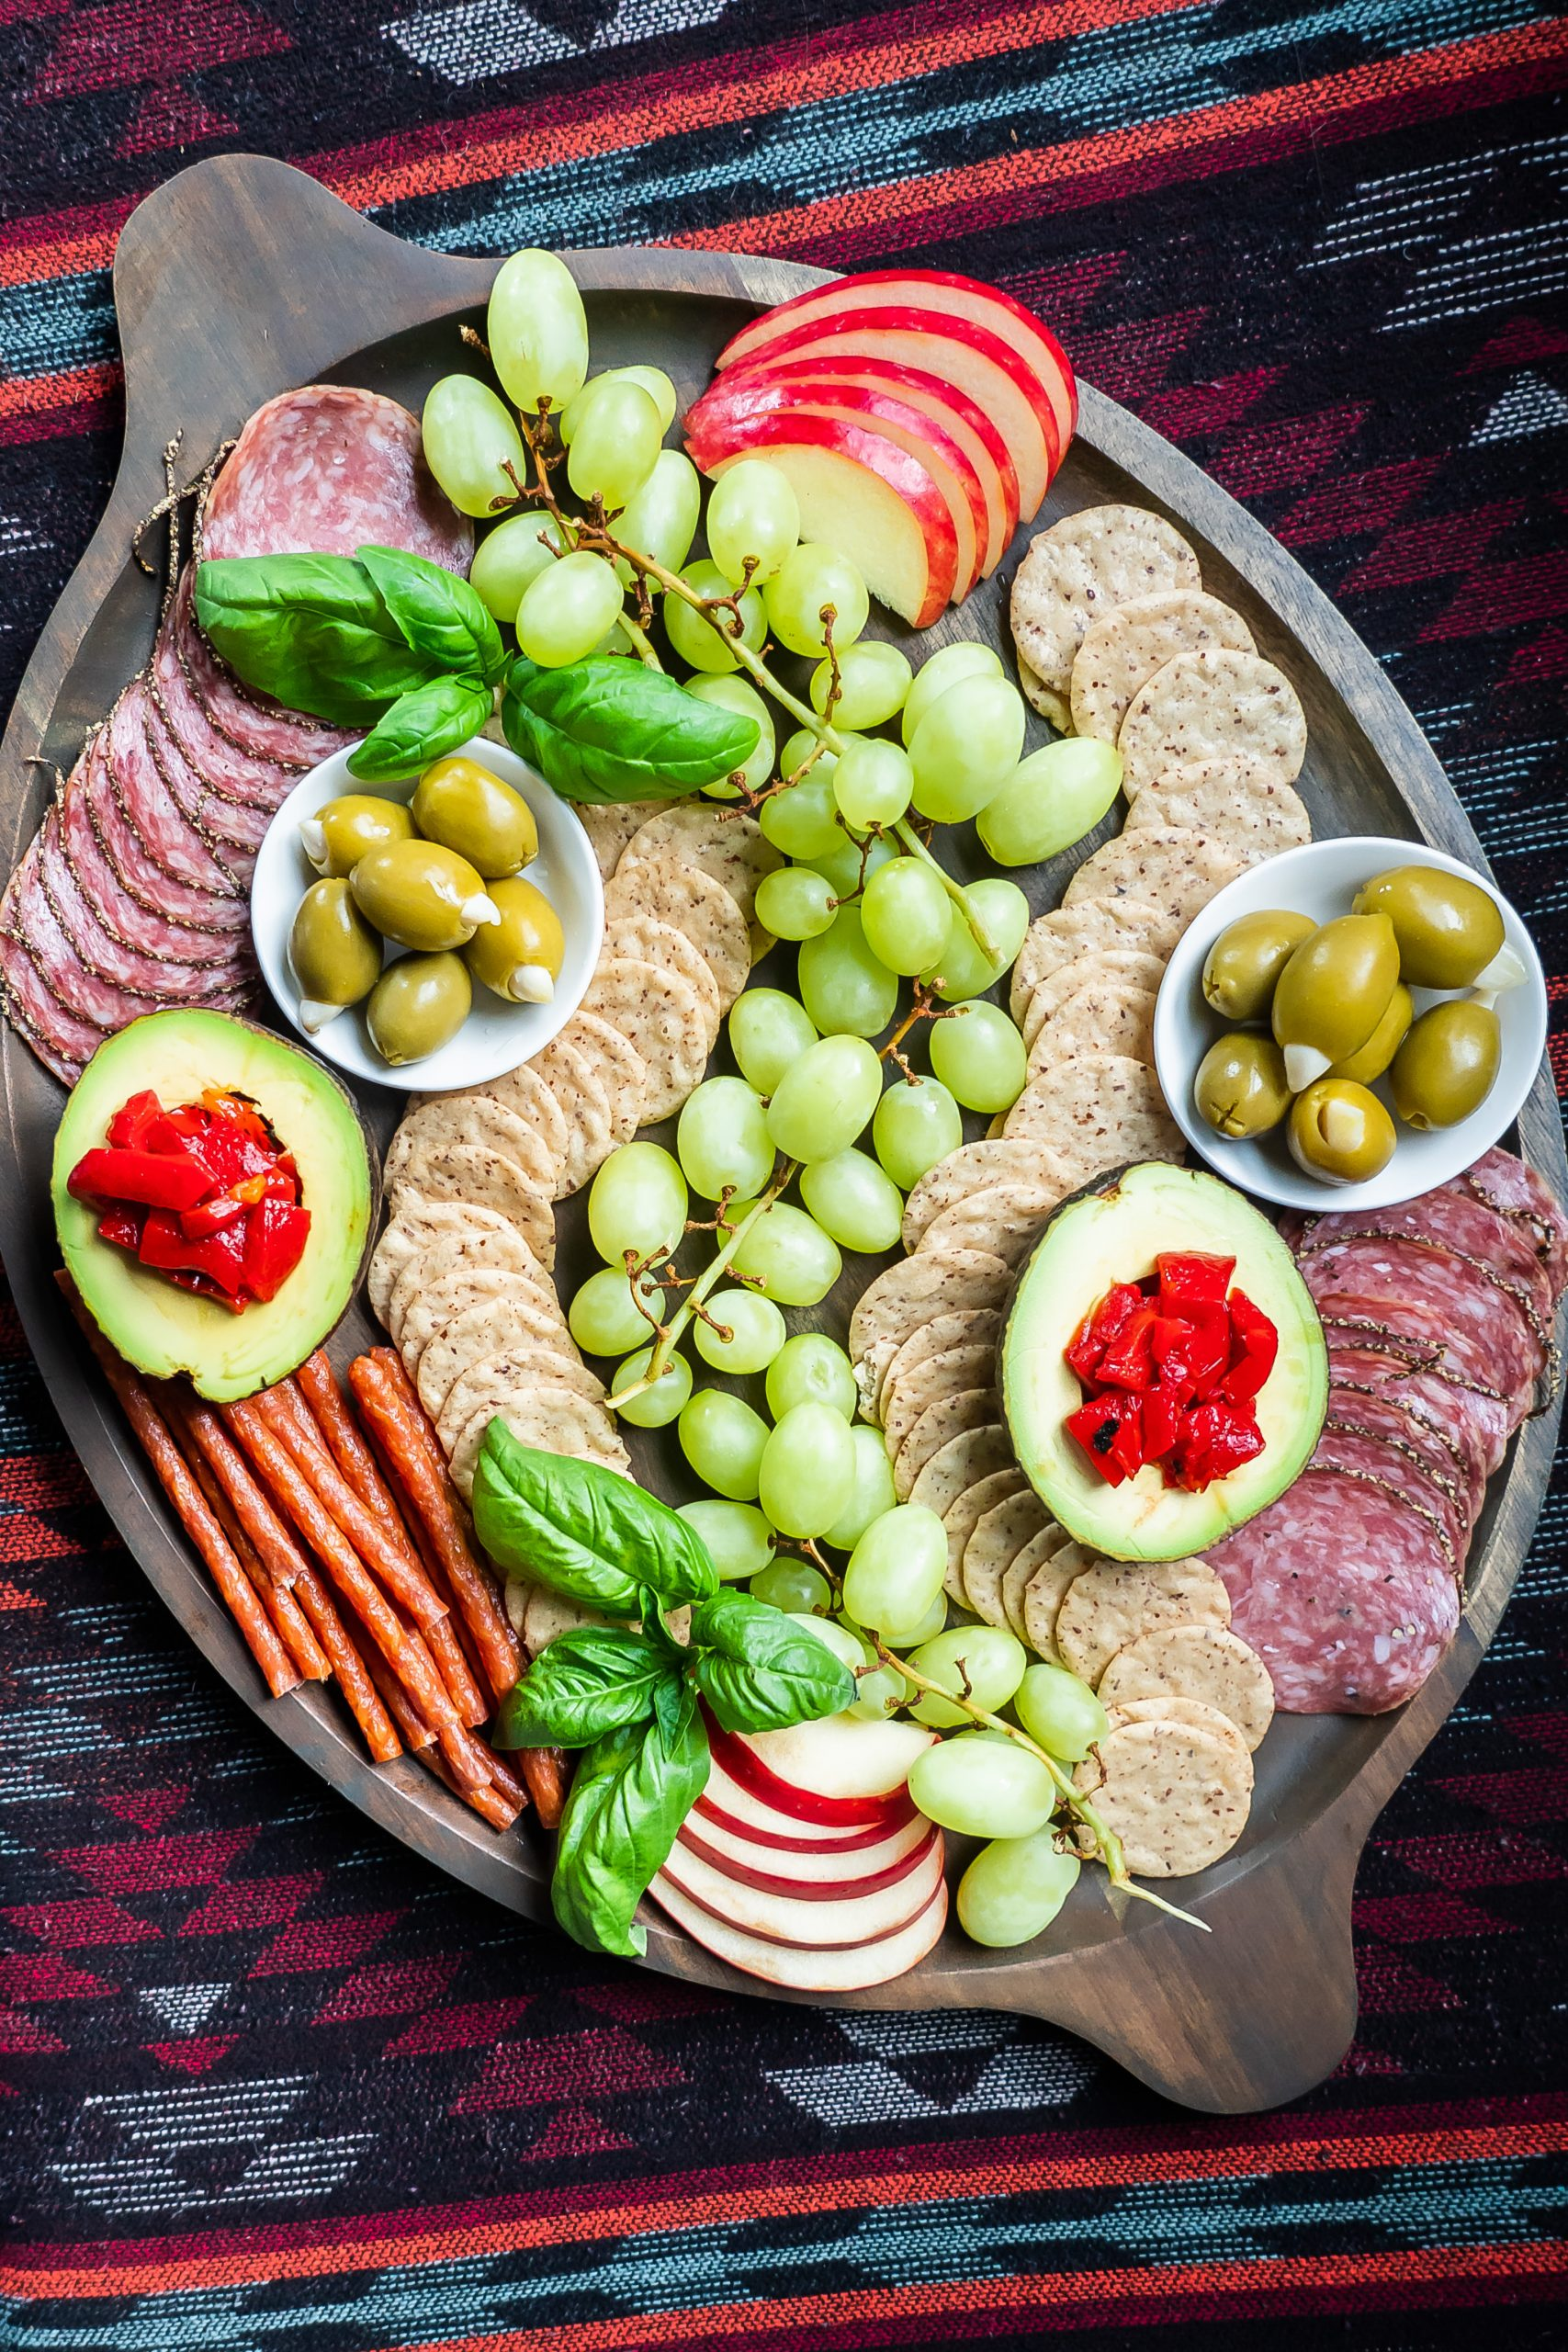 A gluten and dairy free charcuterie board with grapes, crackers, meats, and other nibbles.